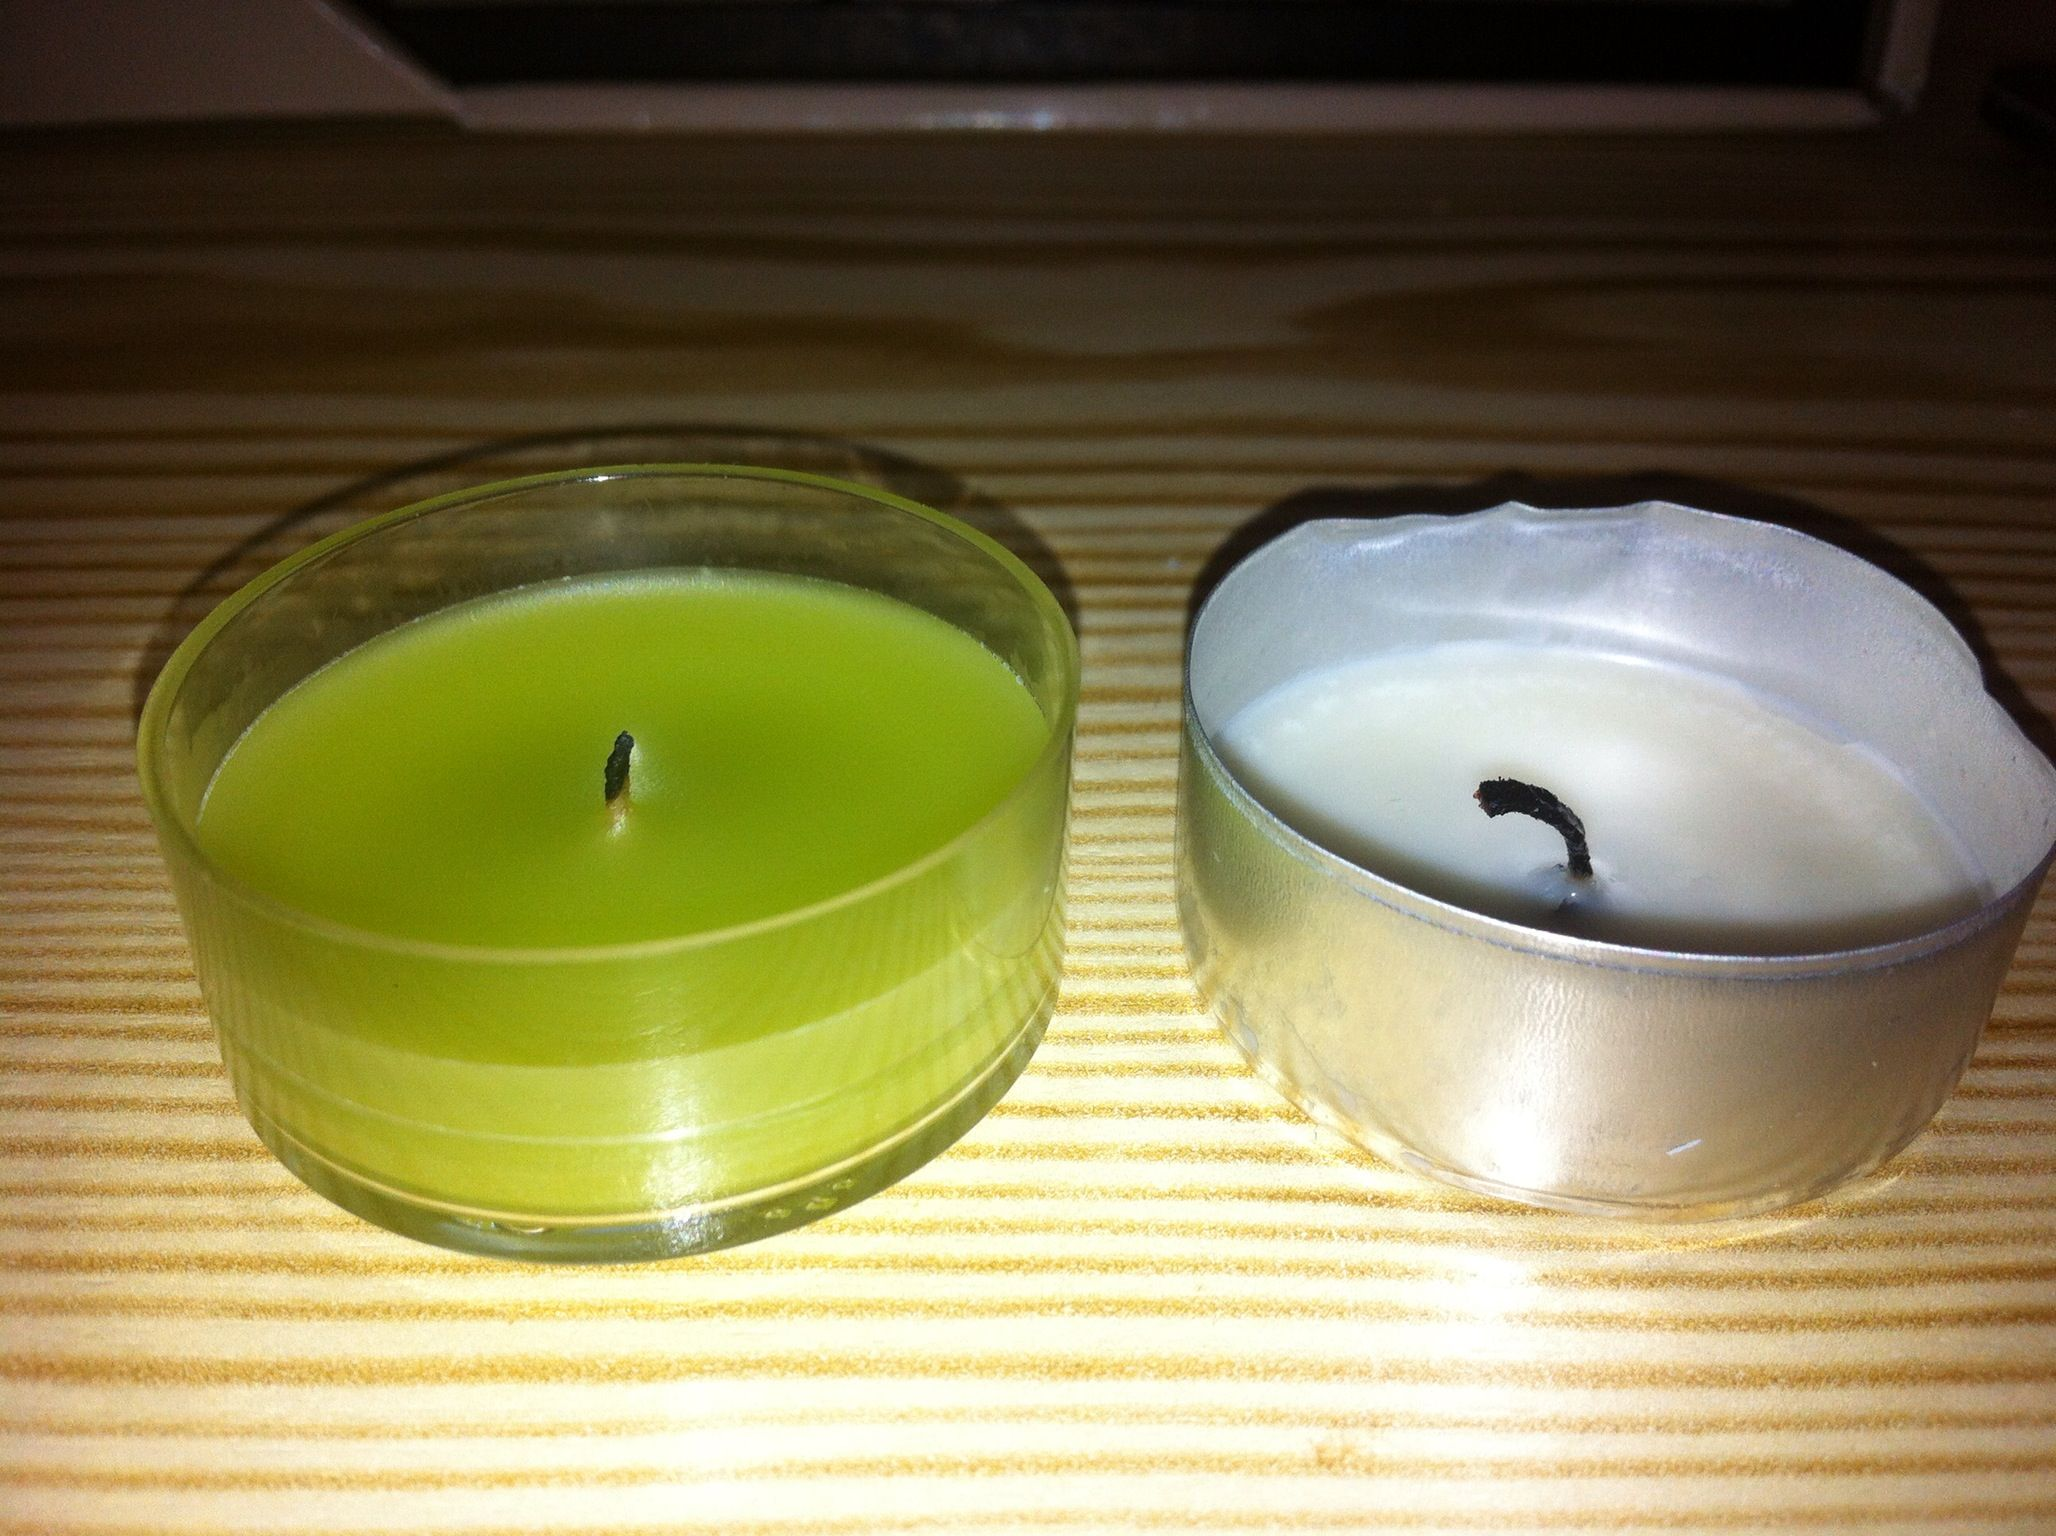 PartyLite tealights vs. Other tealights. No need to say more. www.Partylite.biz/AshleyMW to stock up